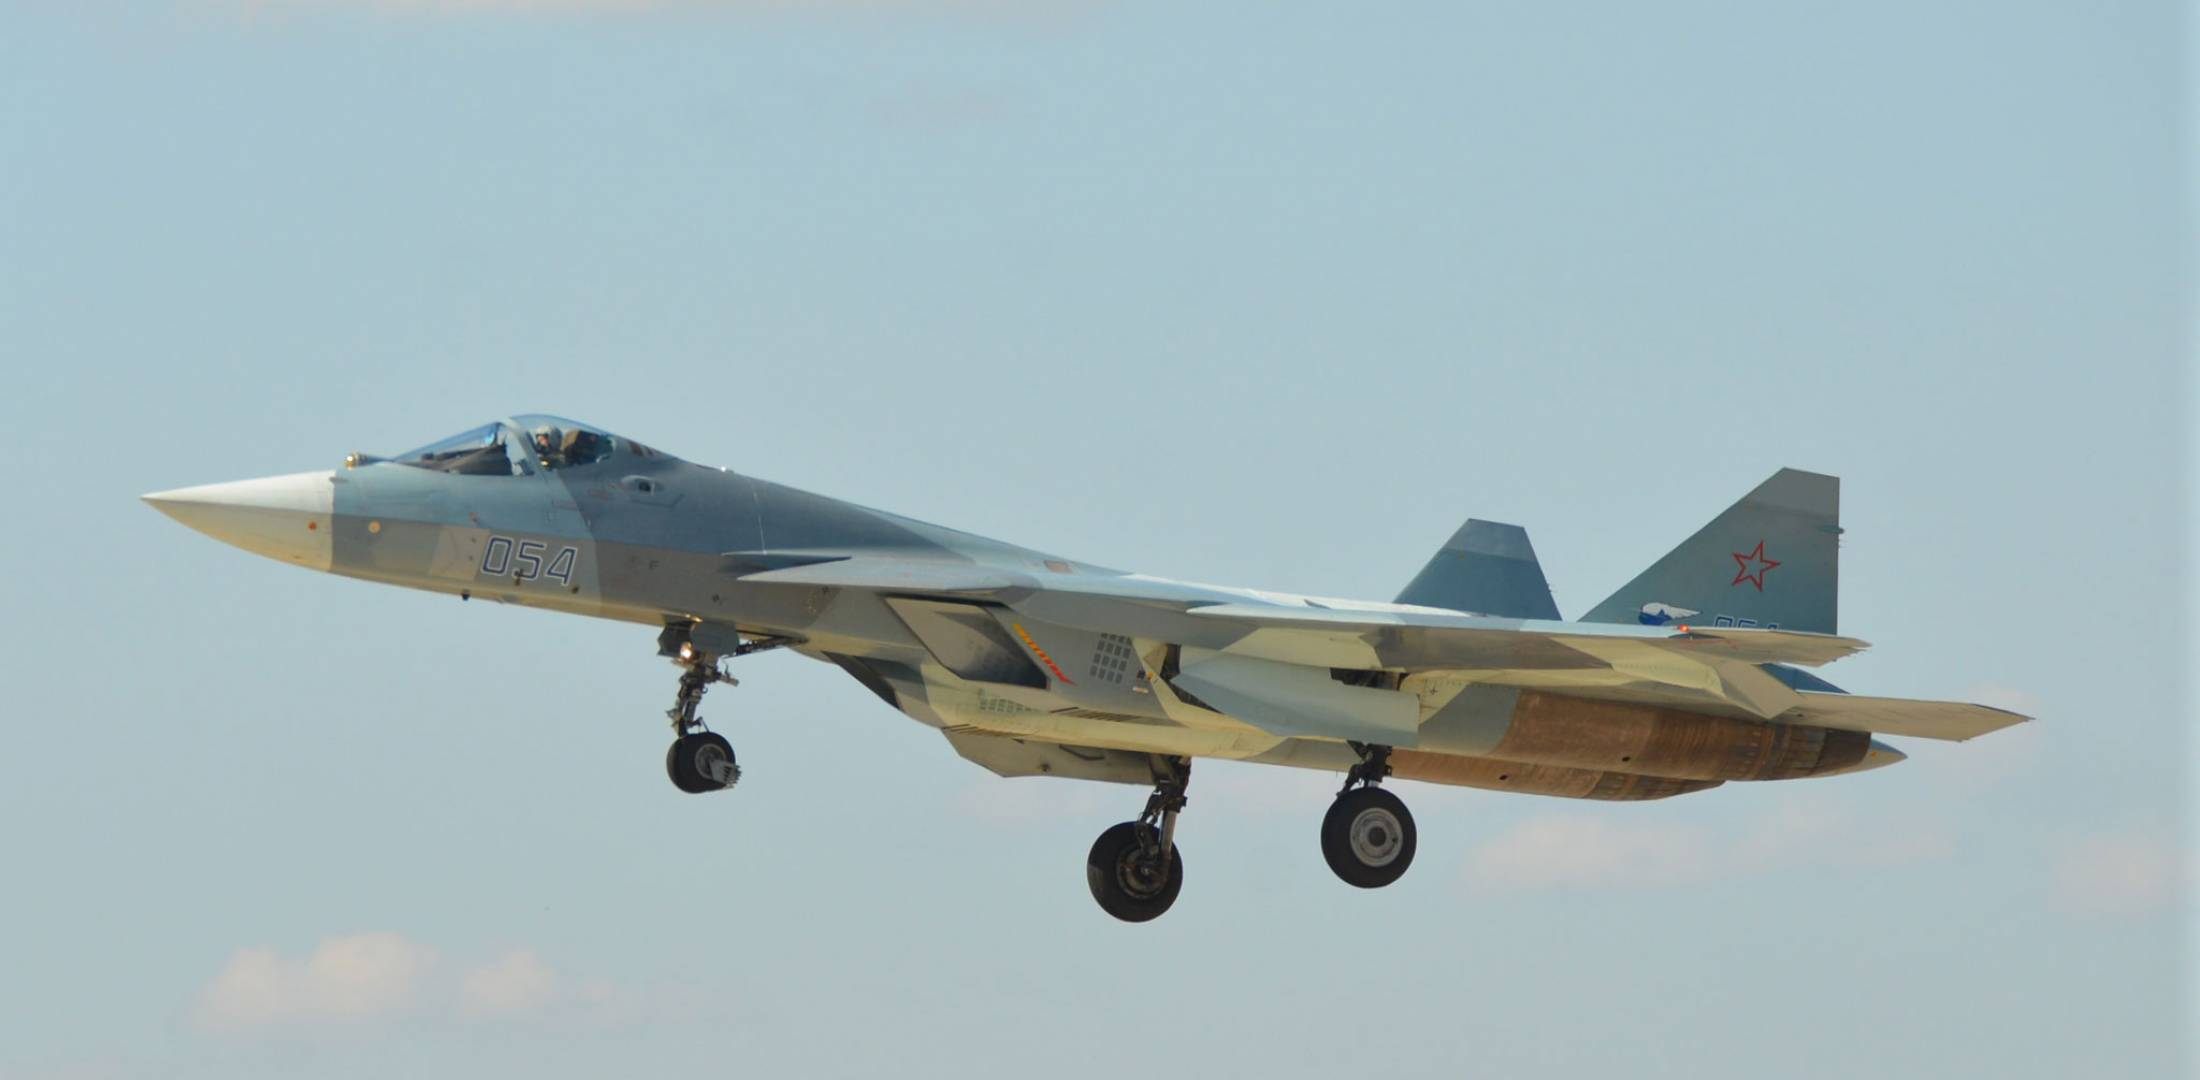 Negotiations to create an Indian version of the Sukhoi T-50 PAKFA stealth fighter have reportedly made progress. (Photos: Vladimir Karnozov)